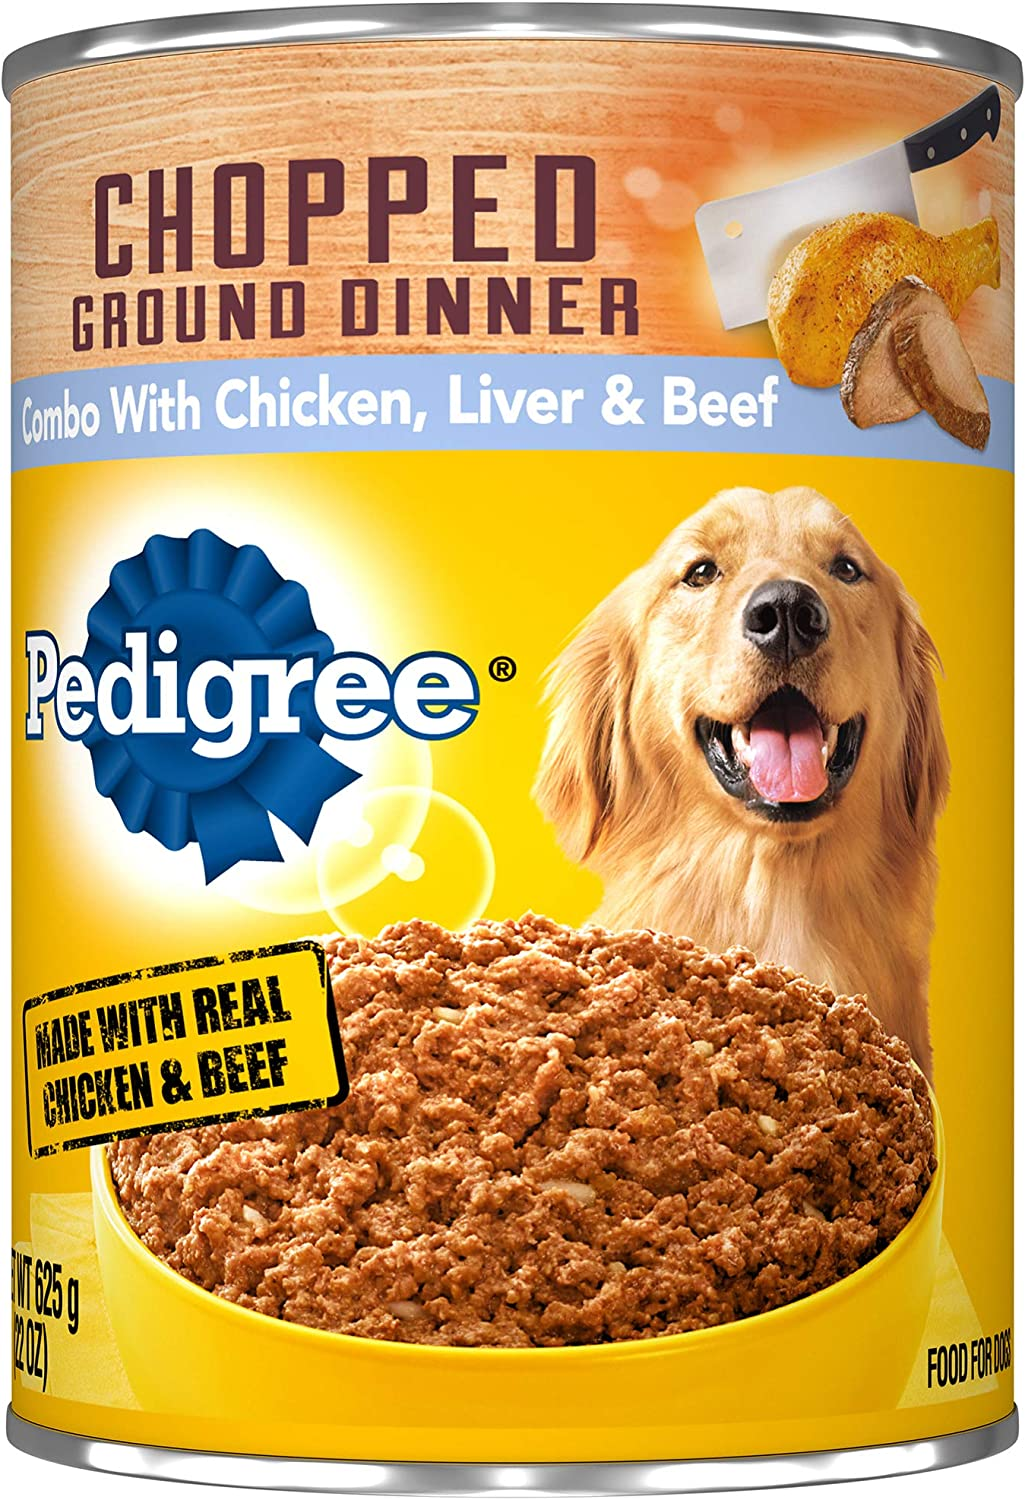 Pedigree Chopped Ground Dinner with Chicken, Beef & Liver Canned Dog Food